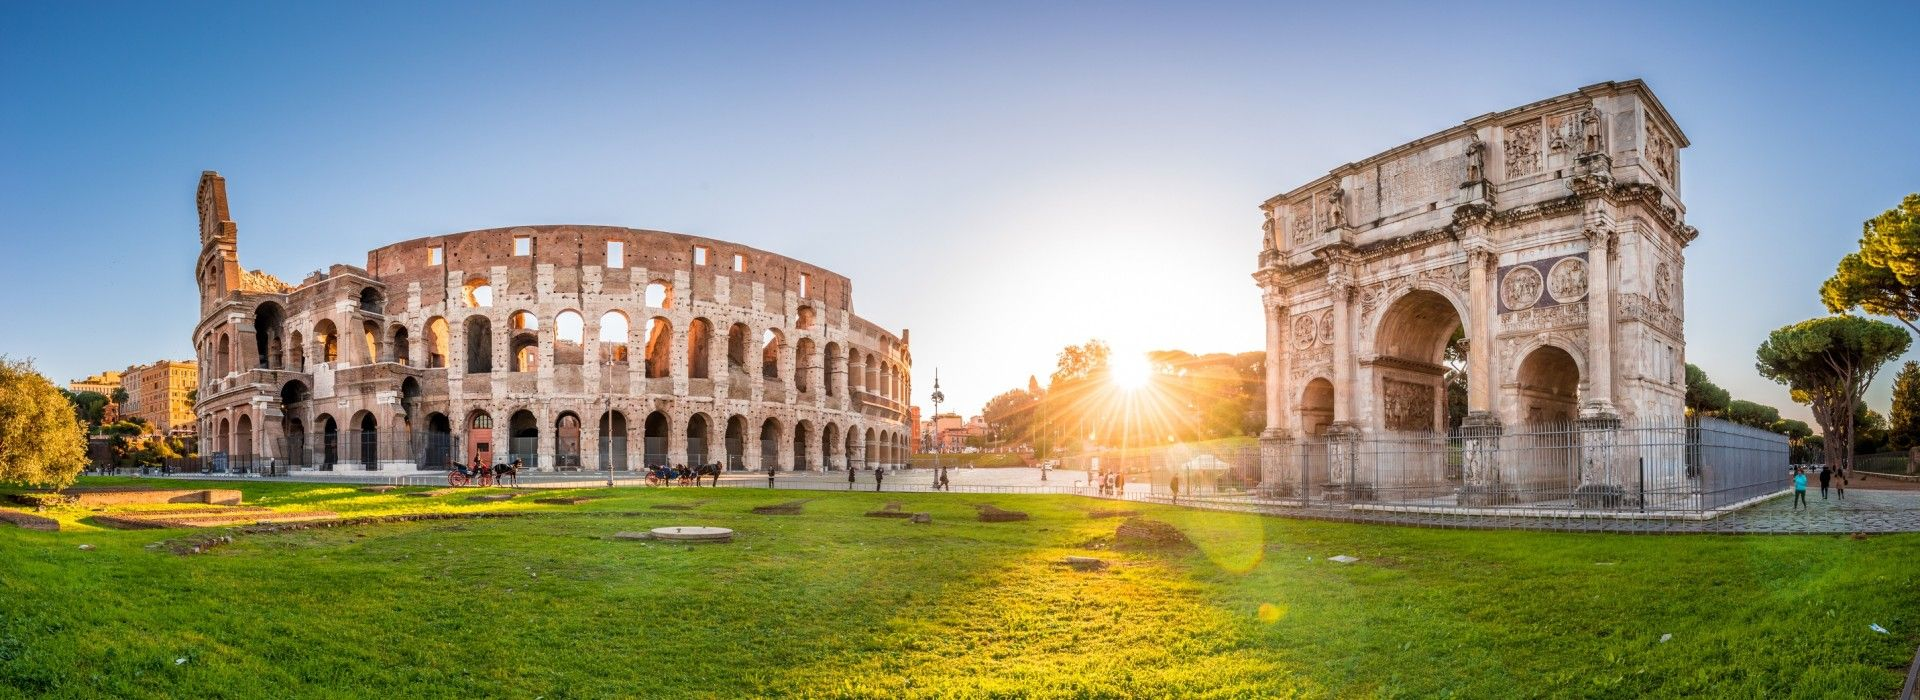 Panoramic view of the Colosseum and Arch of Constantine, Rome